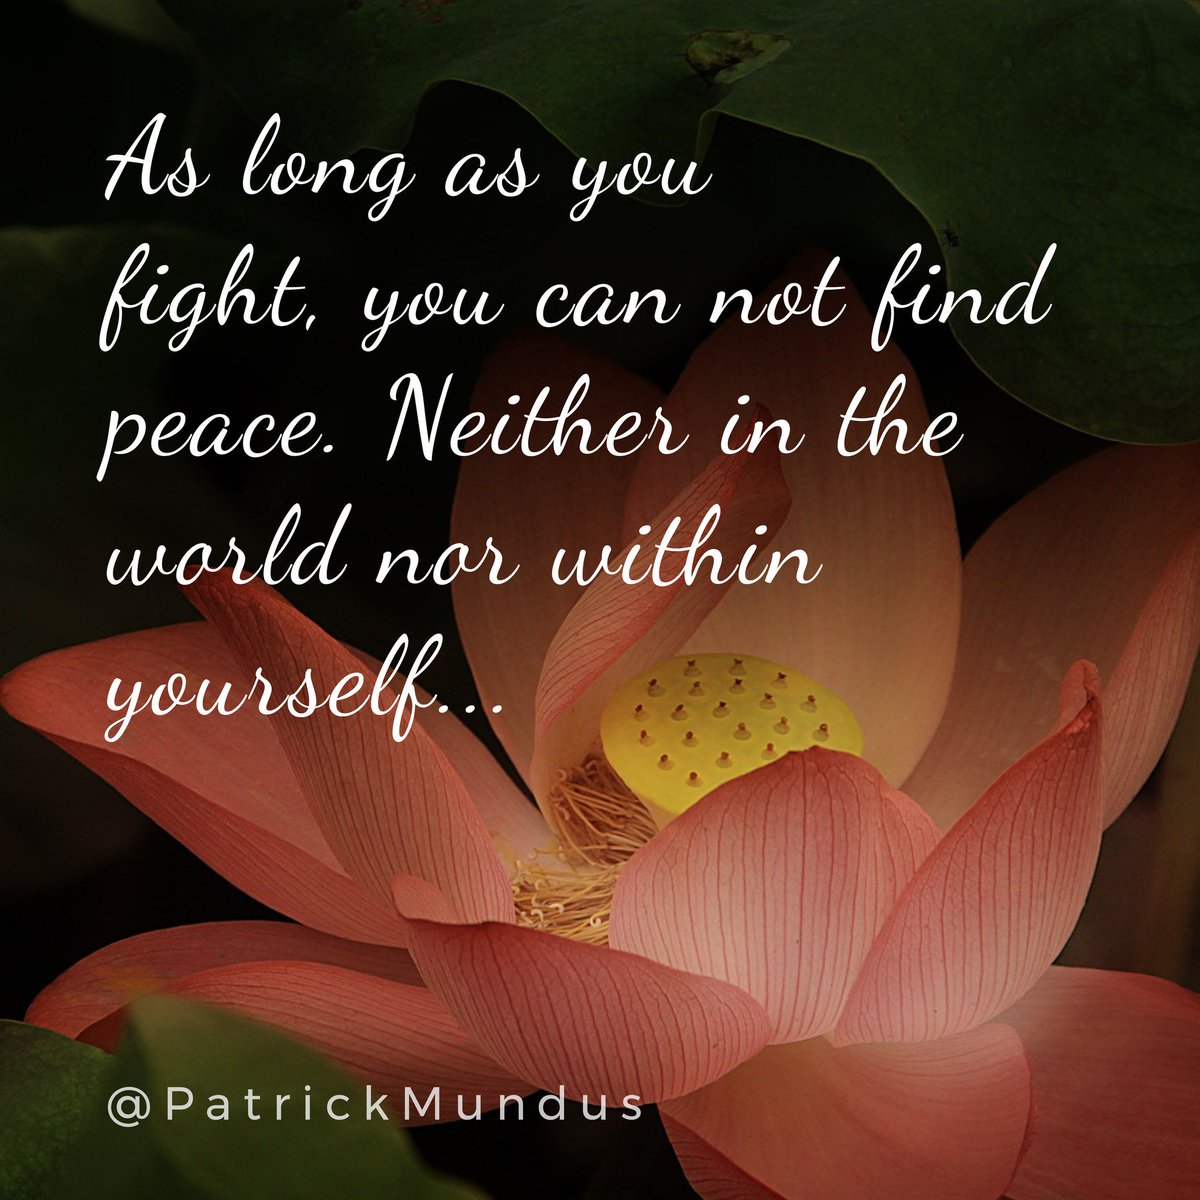 As long as you fight, you can not find #peace. Neither in the world nor within yourself ... <br>http://pic.twitter.com/uFb4H1xGu4